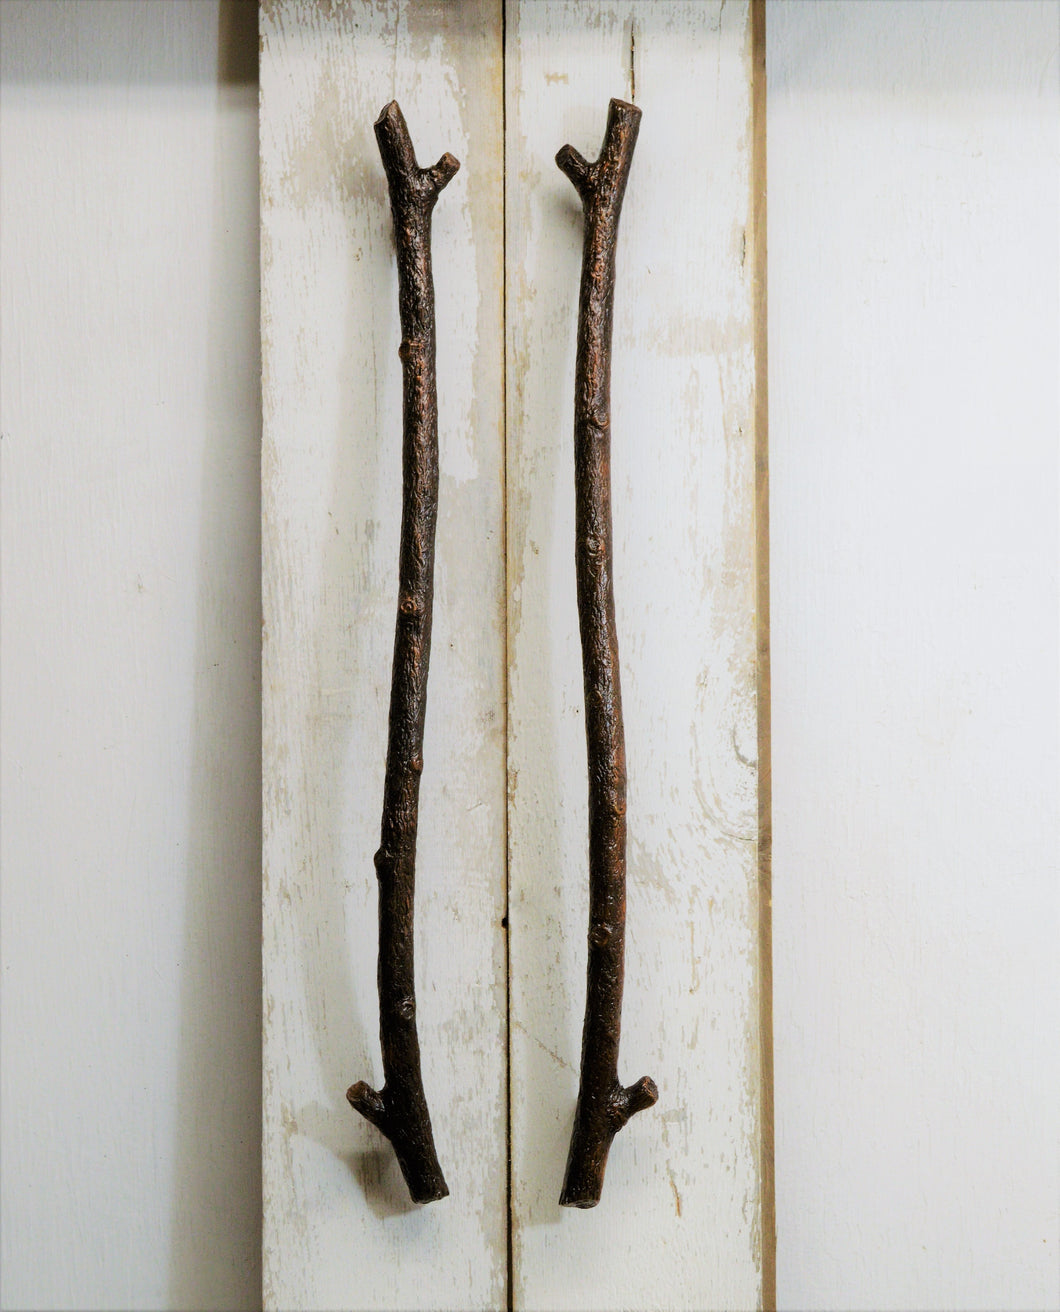 Willow Branch Refrigerator & Appliance Pulls